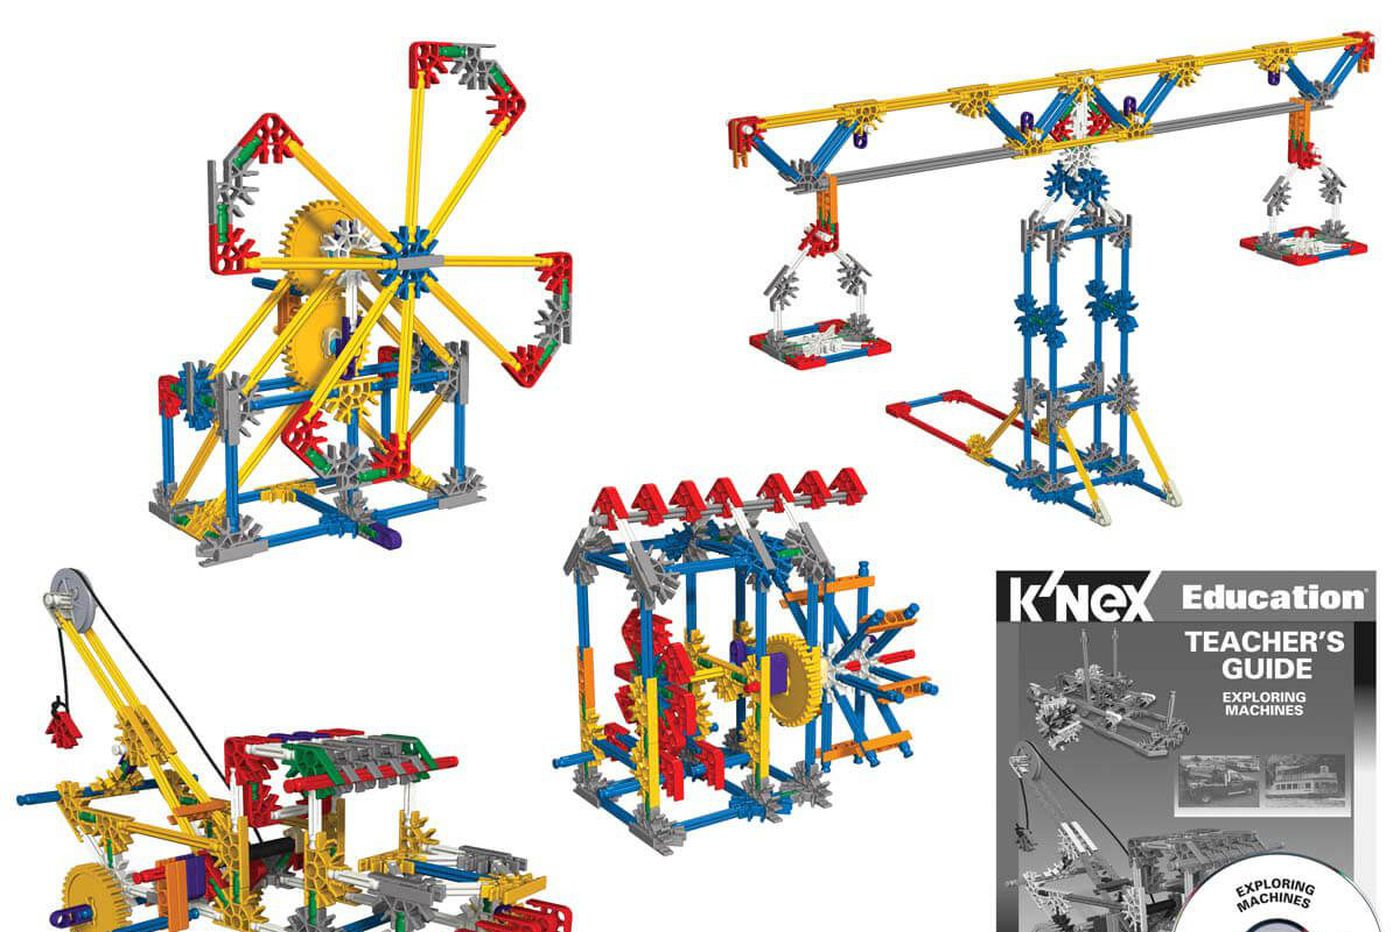 K'nex toy maker to be auctioned by lender PNC Bank